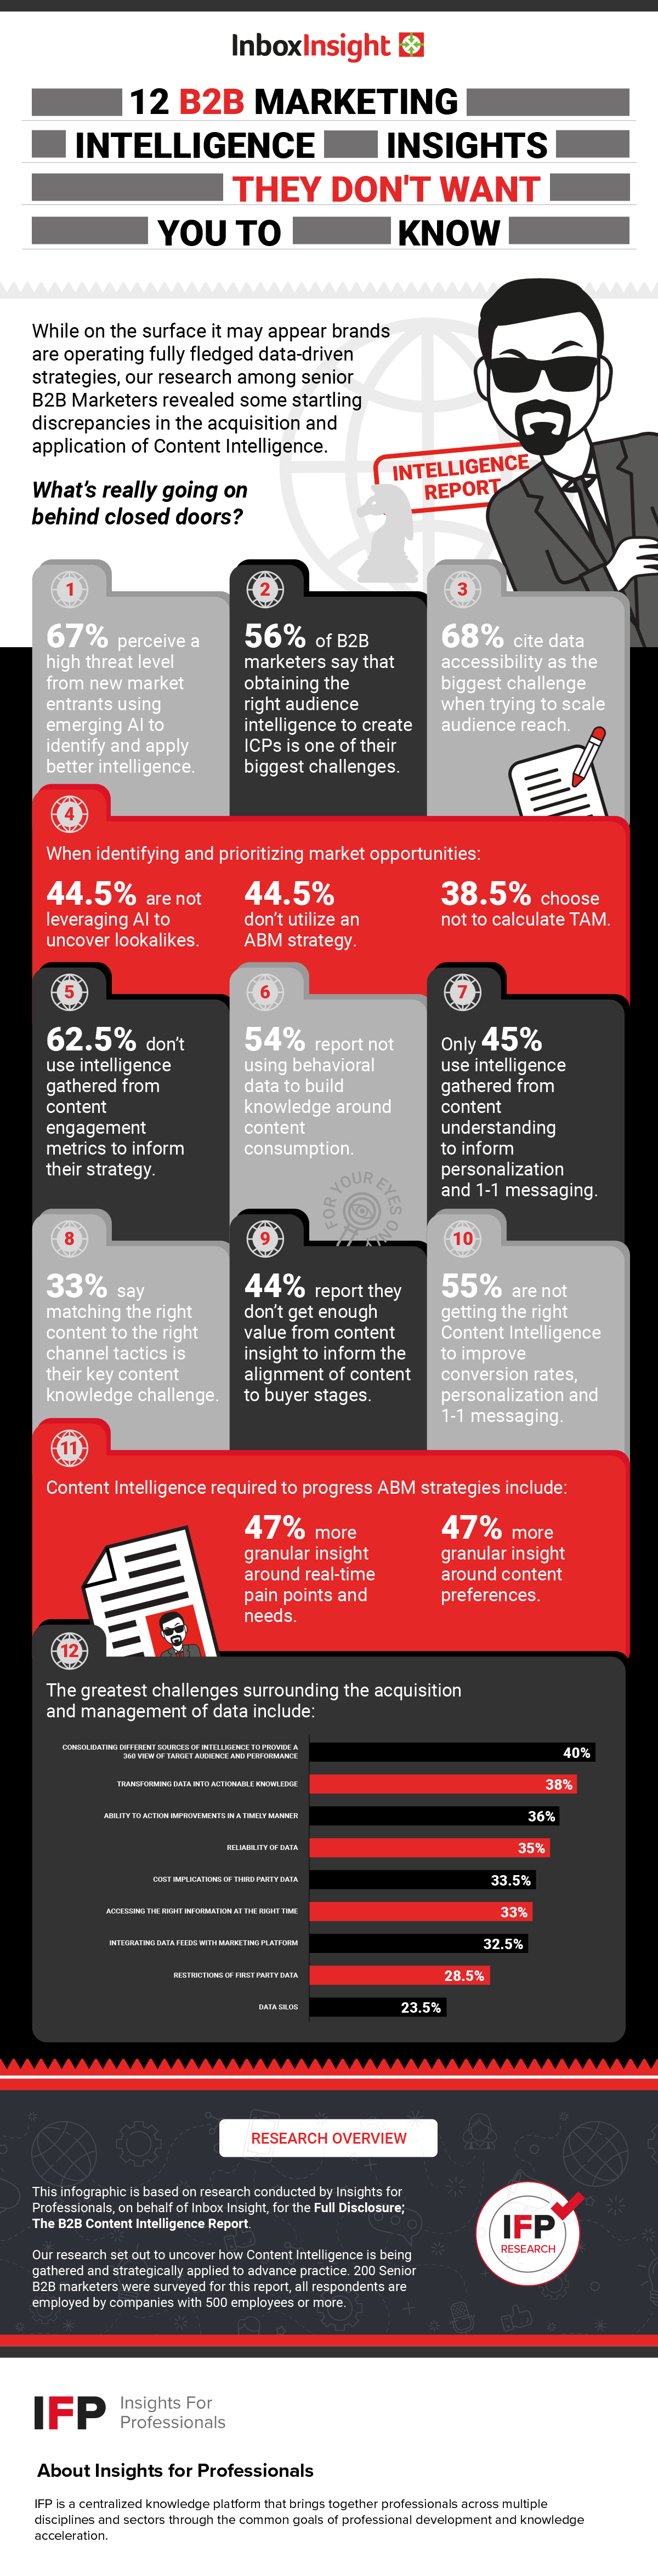 12-B2B-Intelligence-Insights-THEY-don't-want-you-to-know